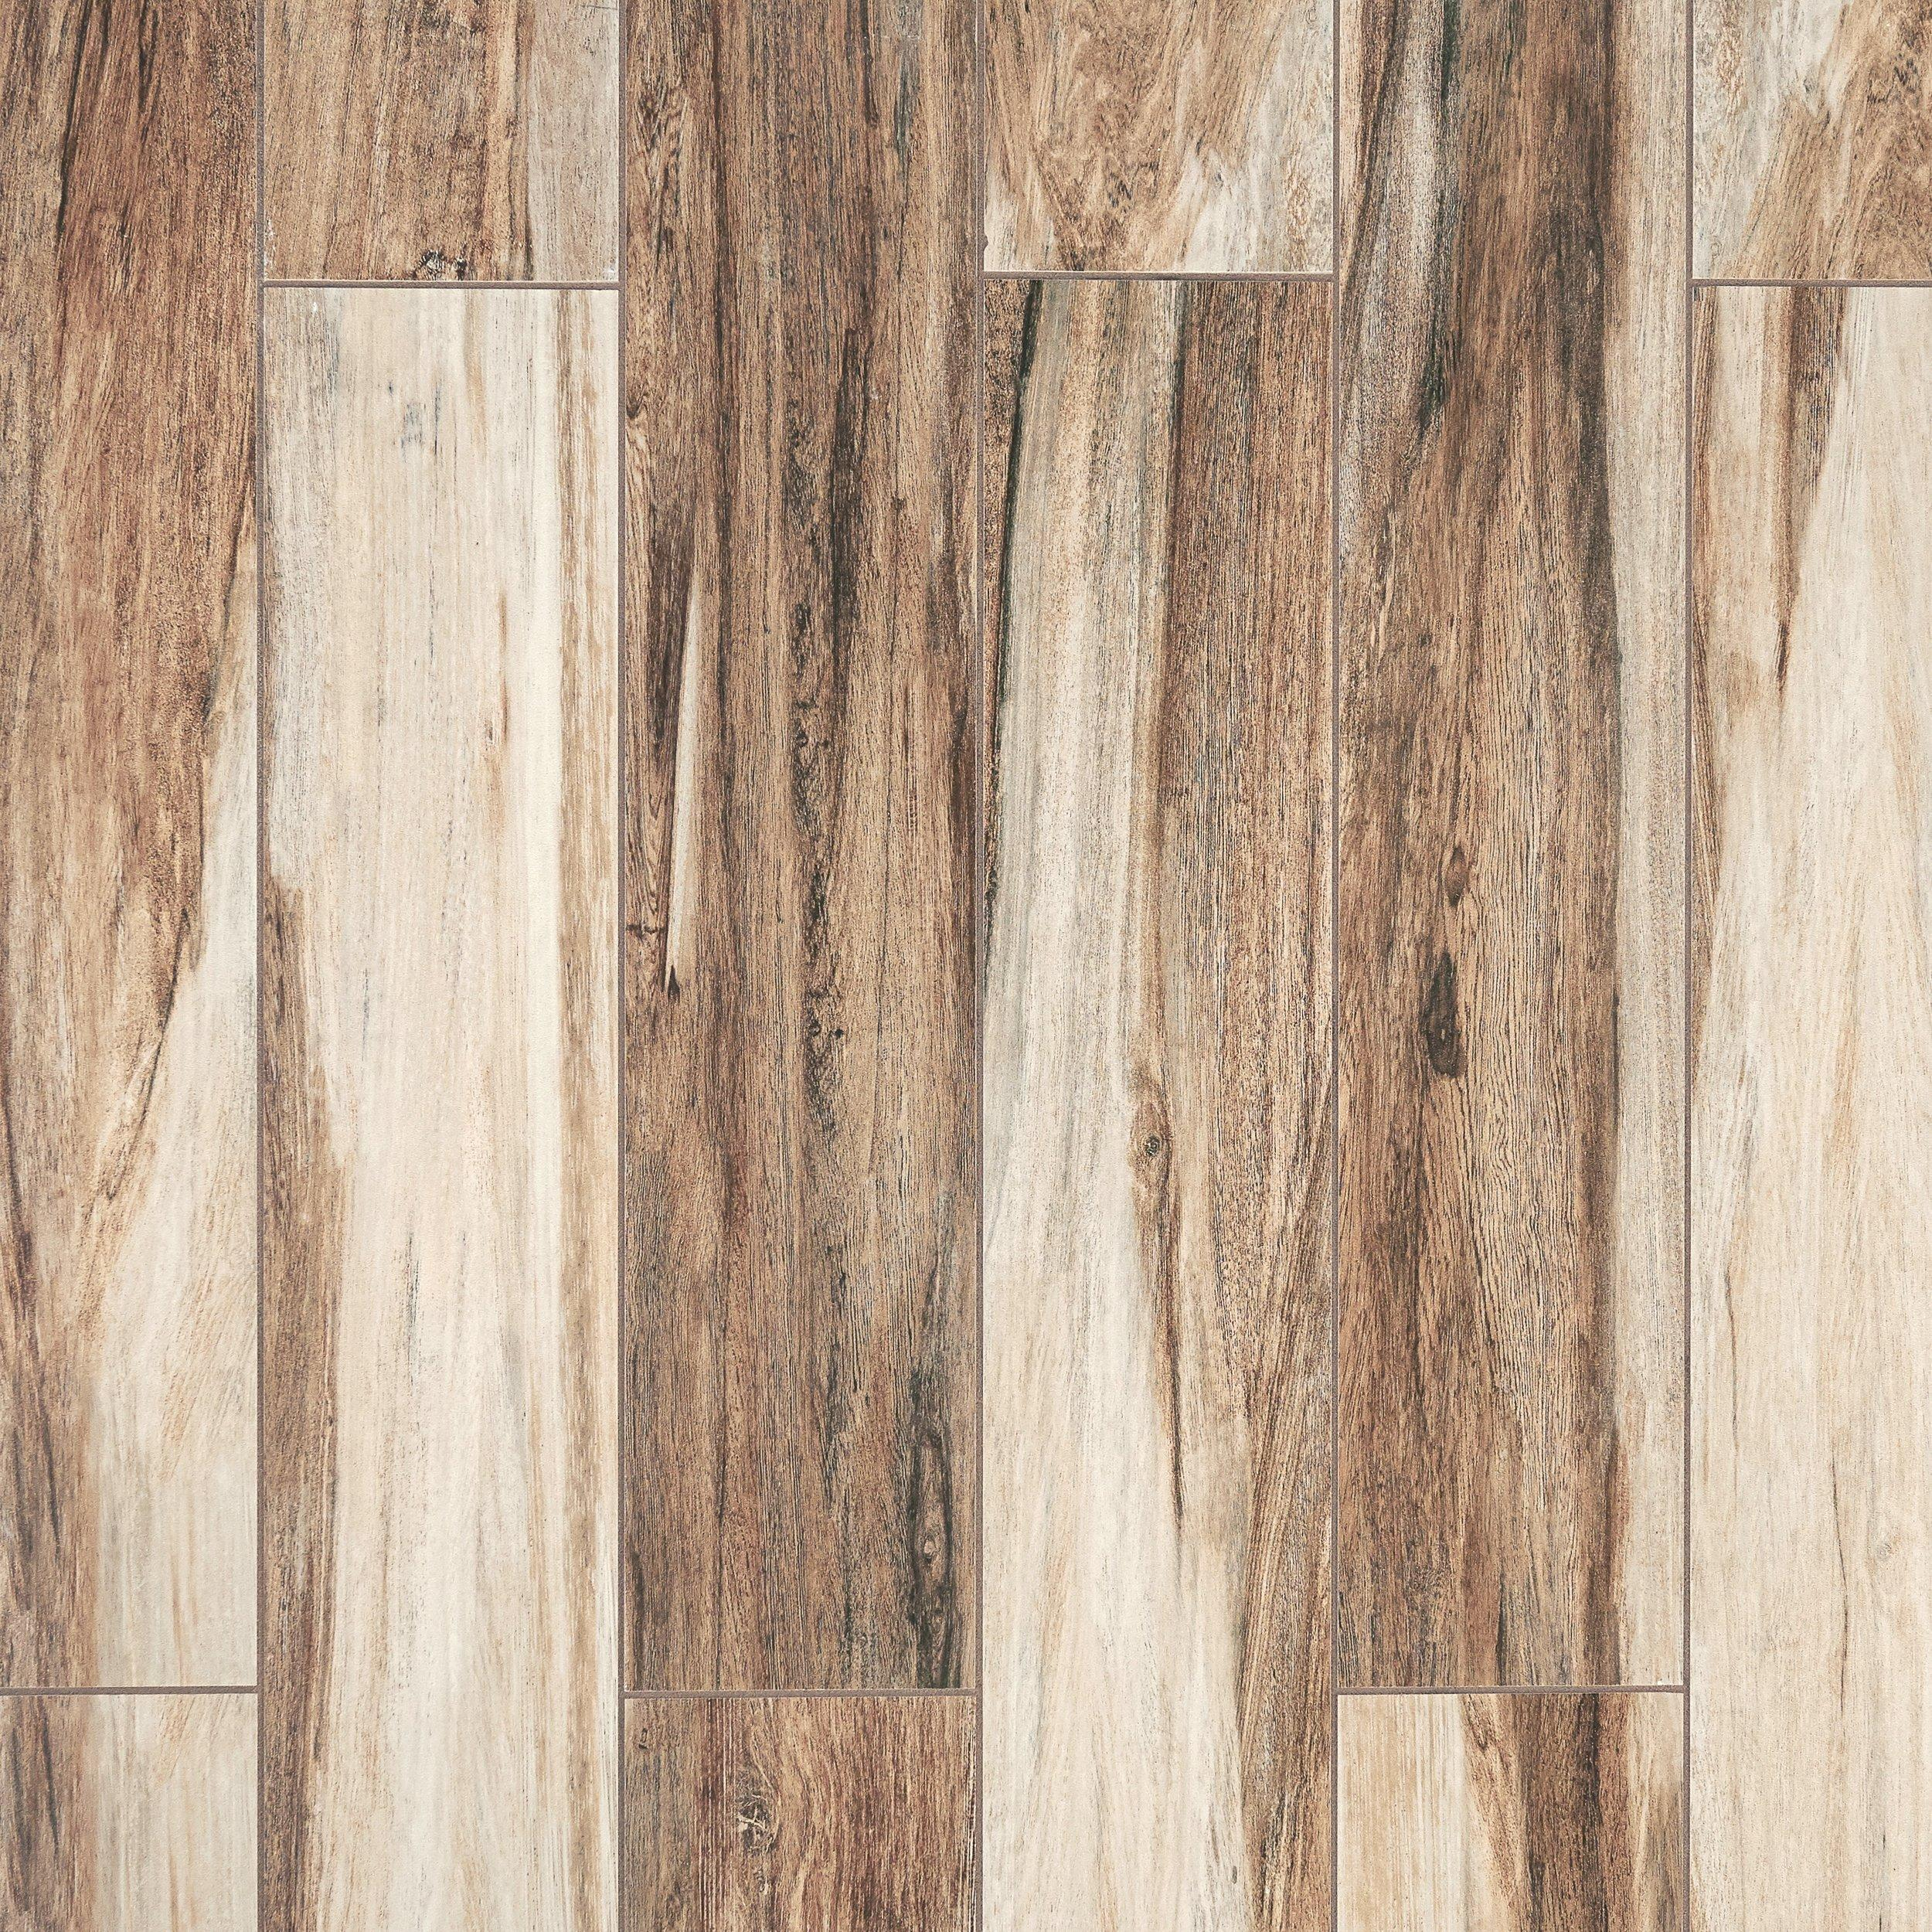 Wood look tile floor decor chesterfield brown wood plank ceramic tile doublecrazyfo Choice Image